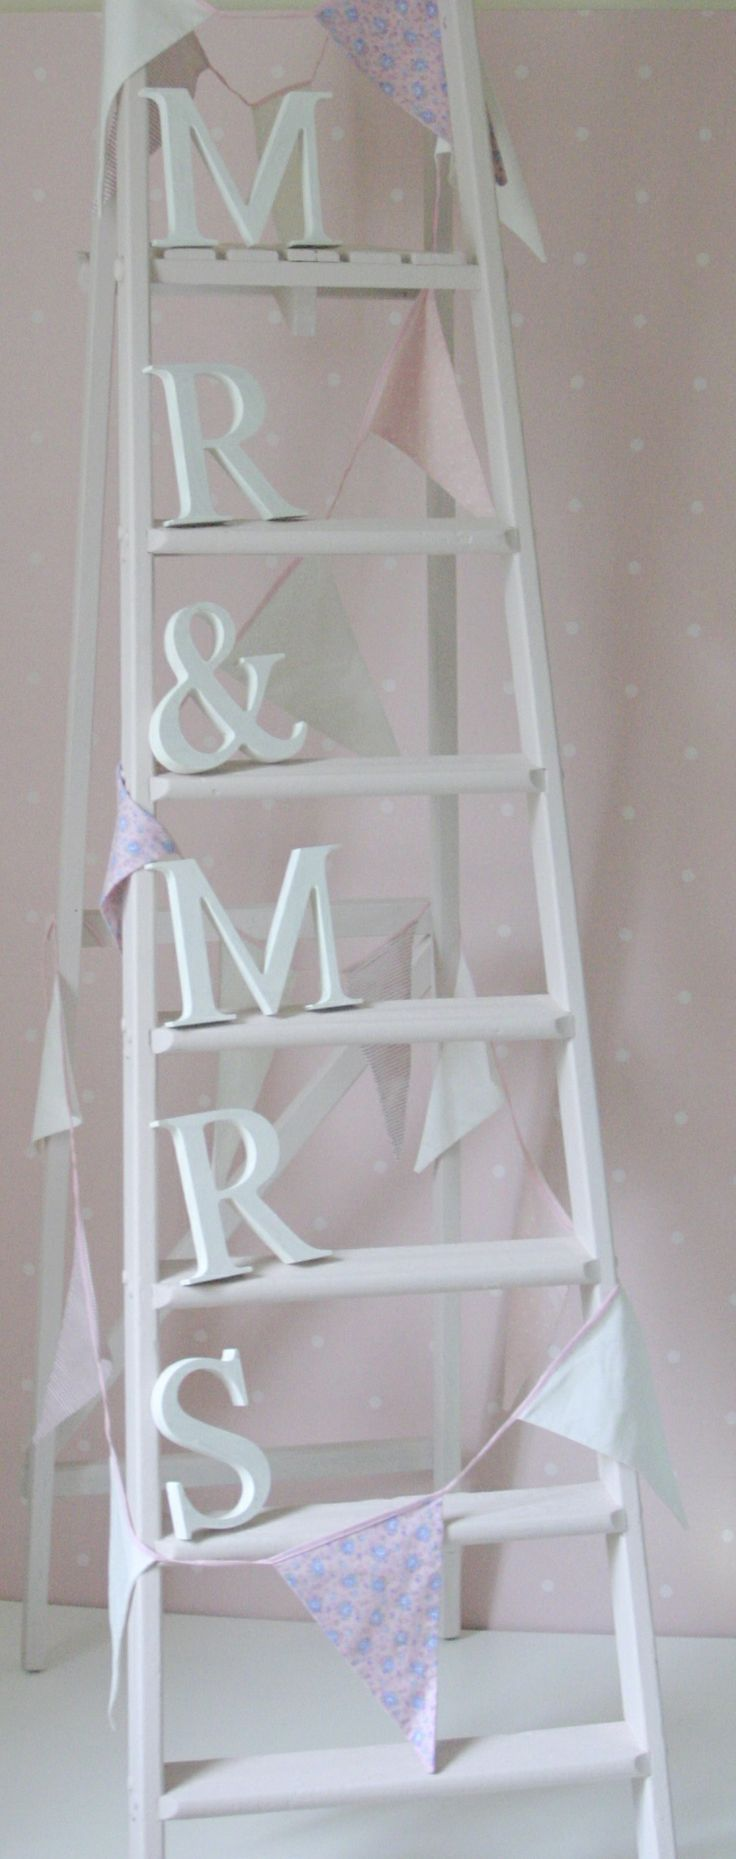 17 best images about old ladder ideas on pinterest for Echelle decorative bois